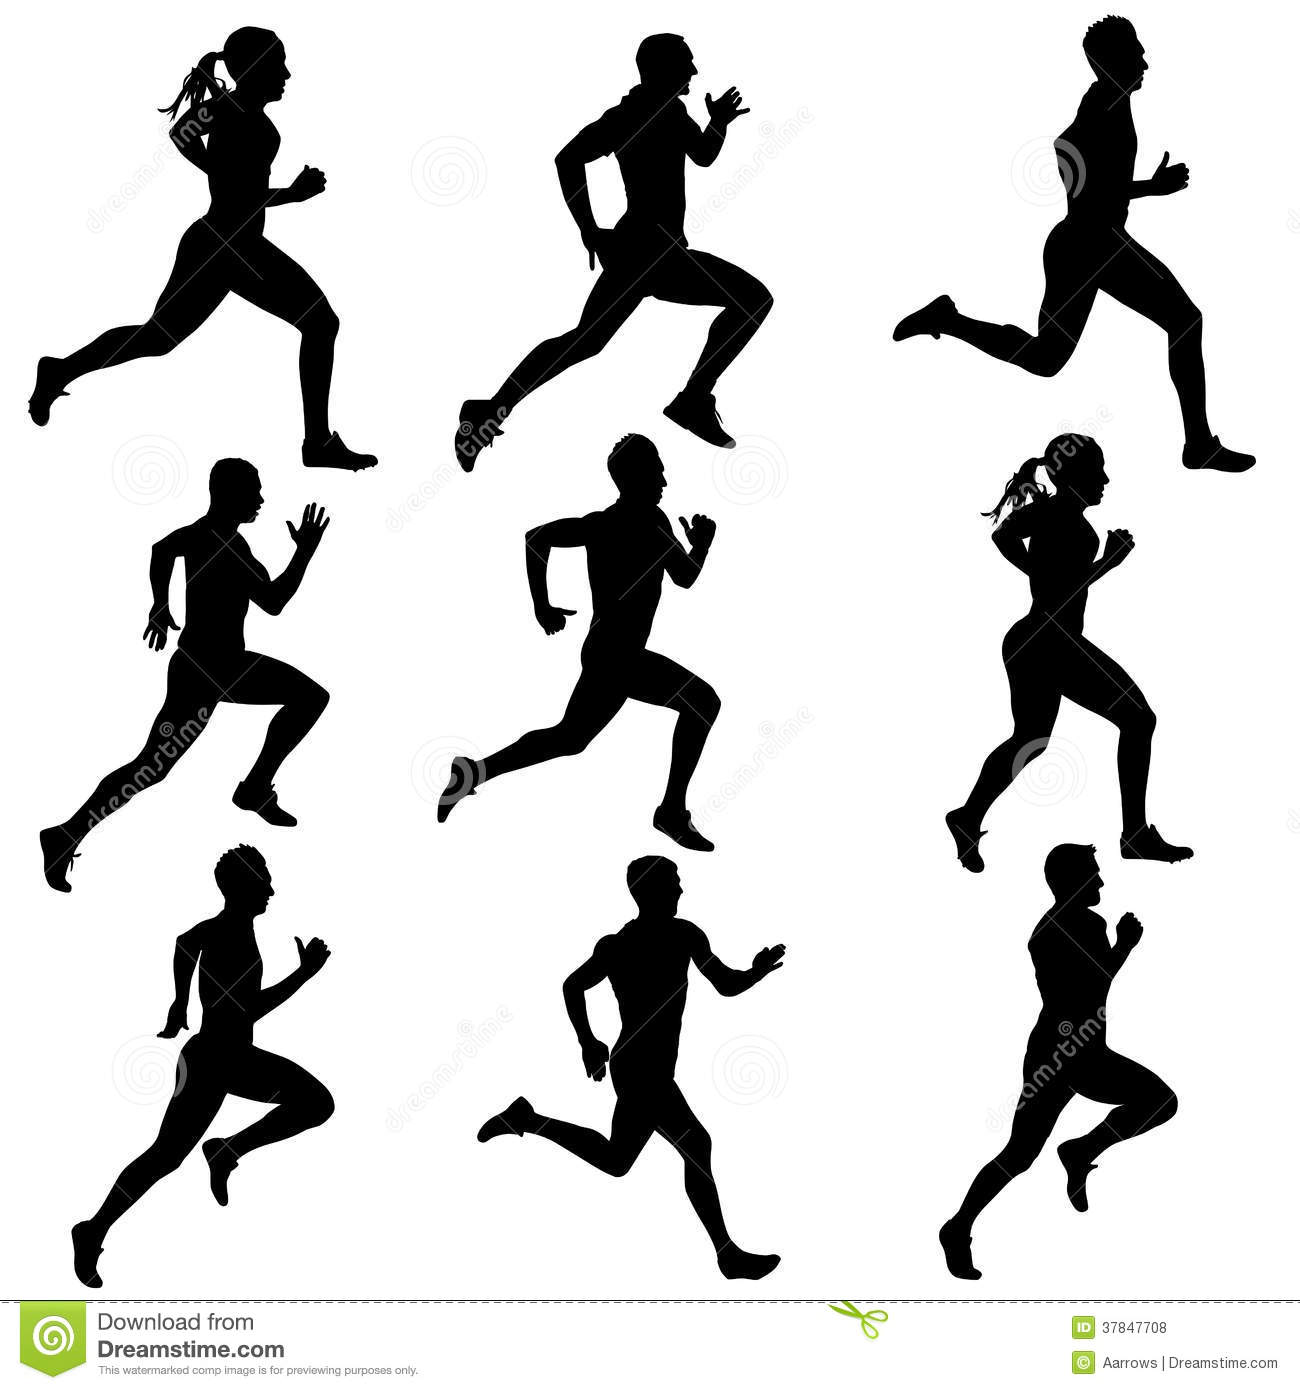 Exercise Silhouette Clipart - Clipart Kid